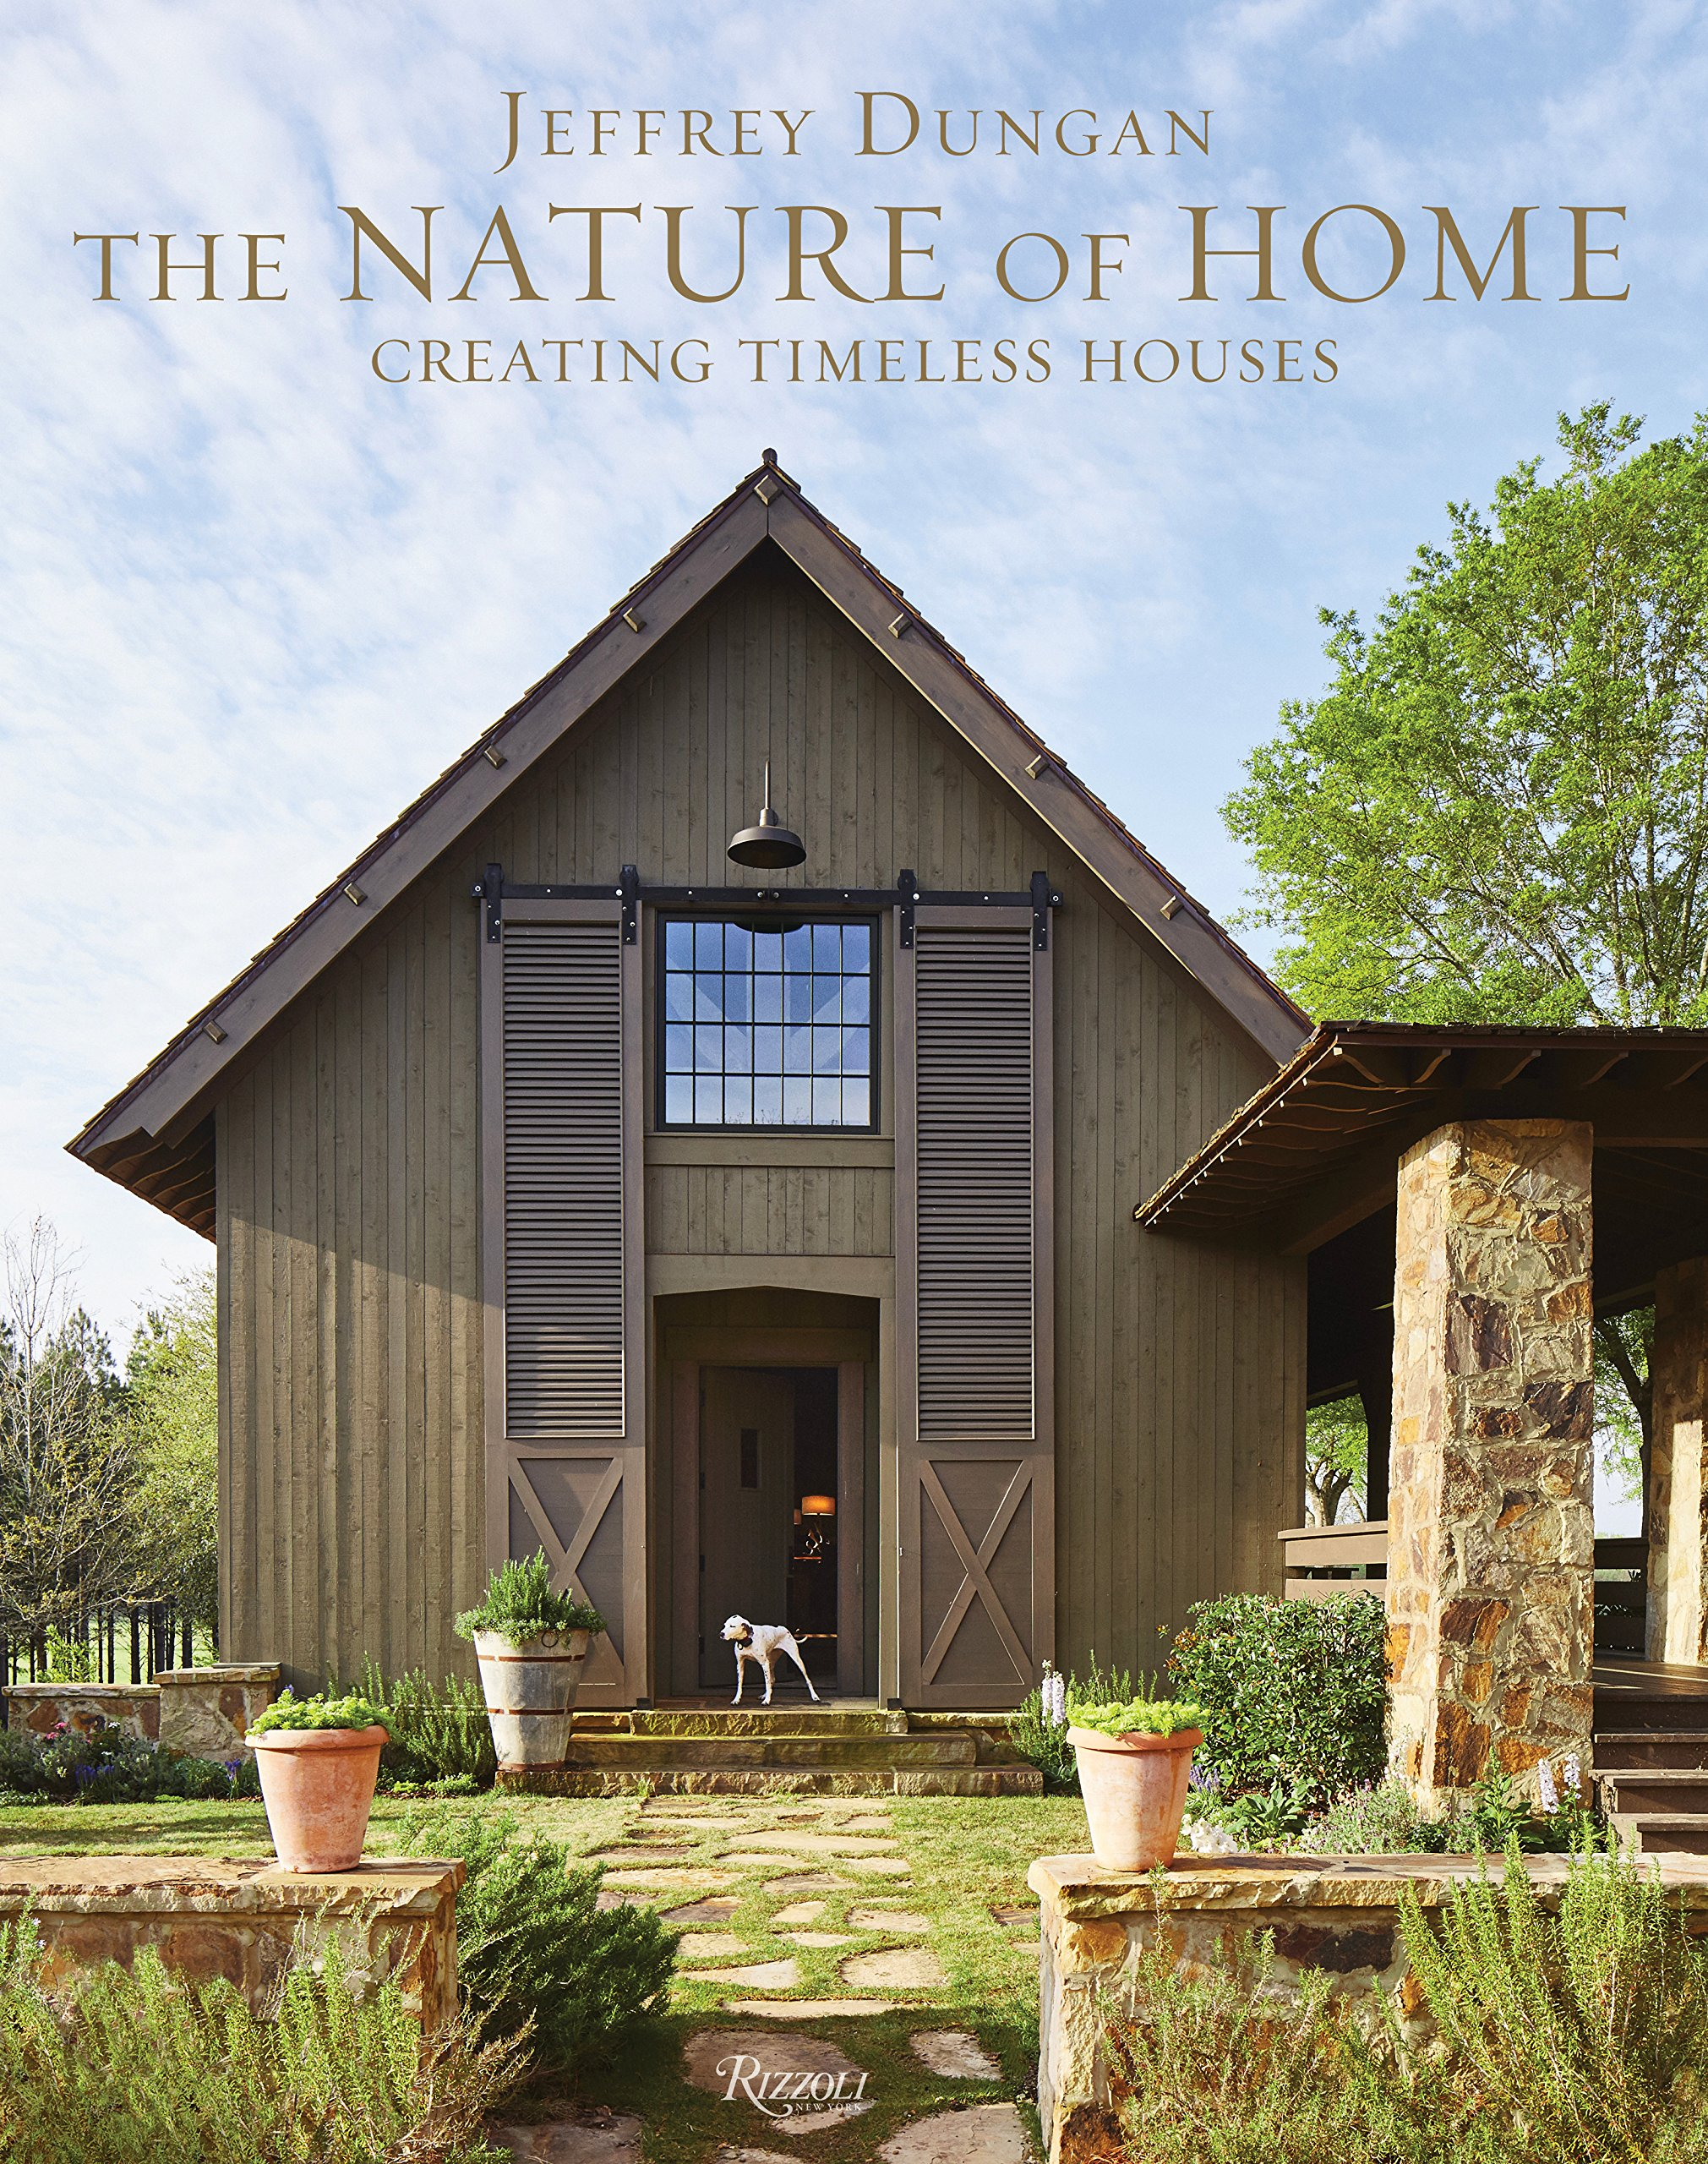 Jeffrey Dungan's book The Nature of Home.